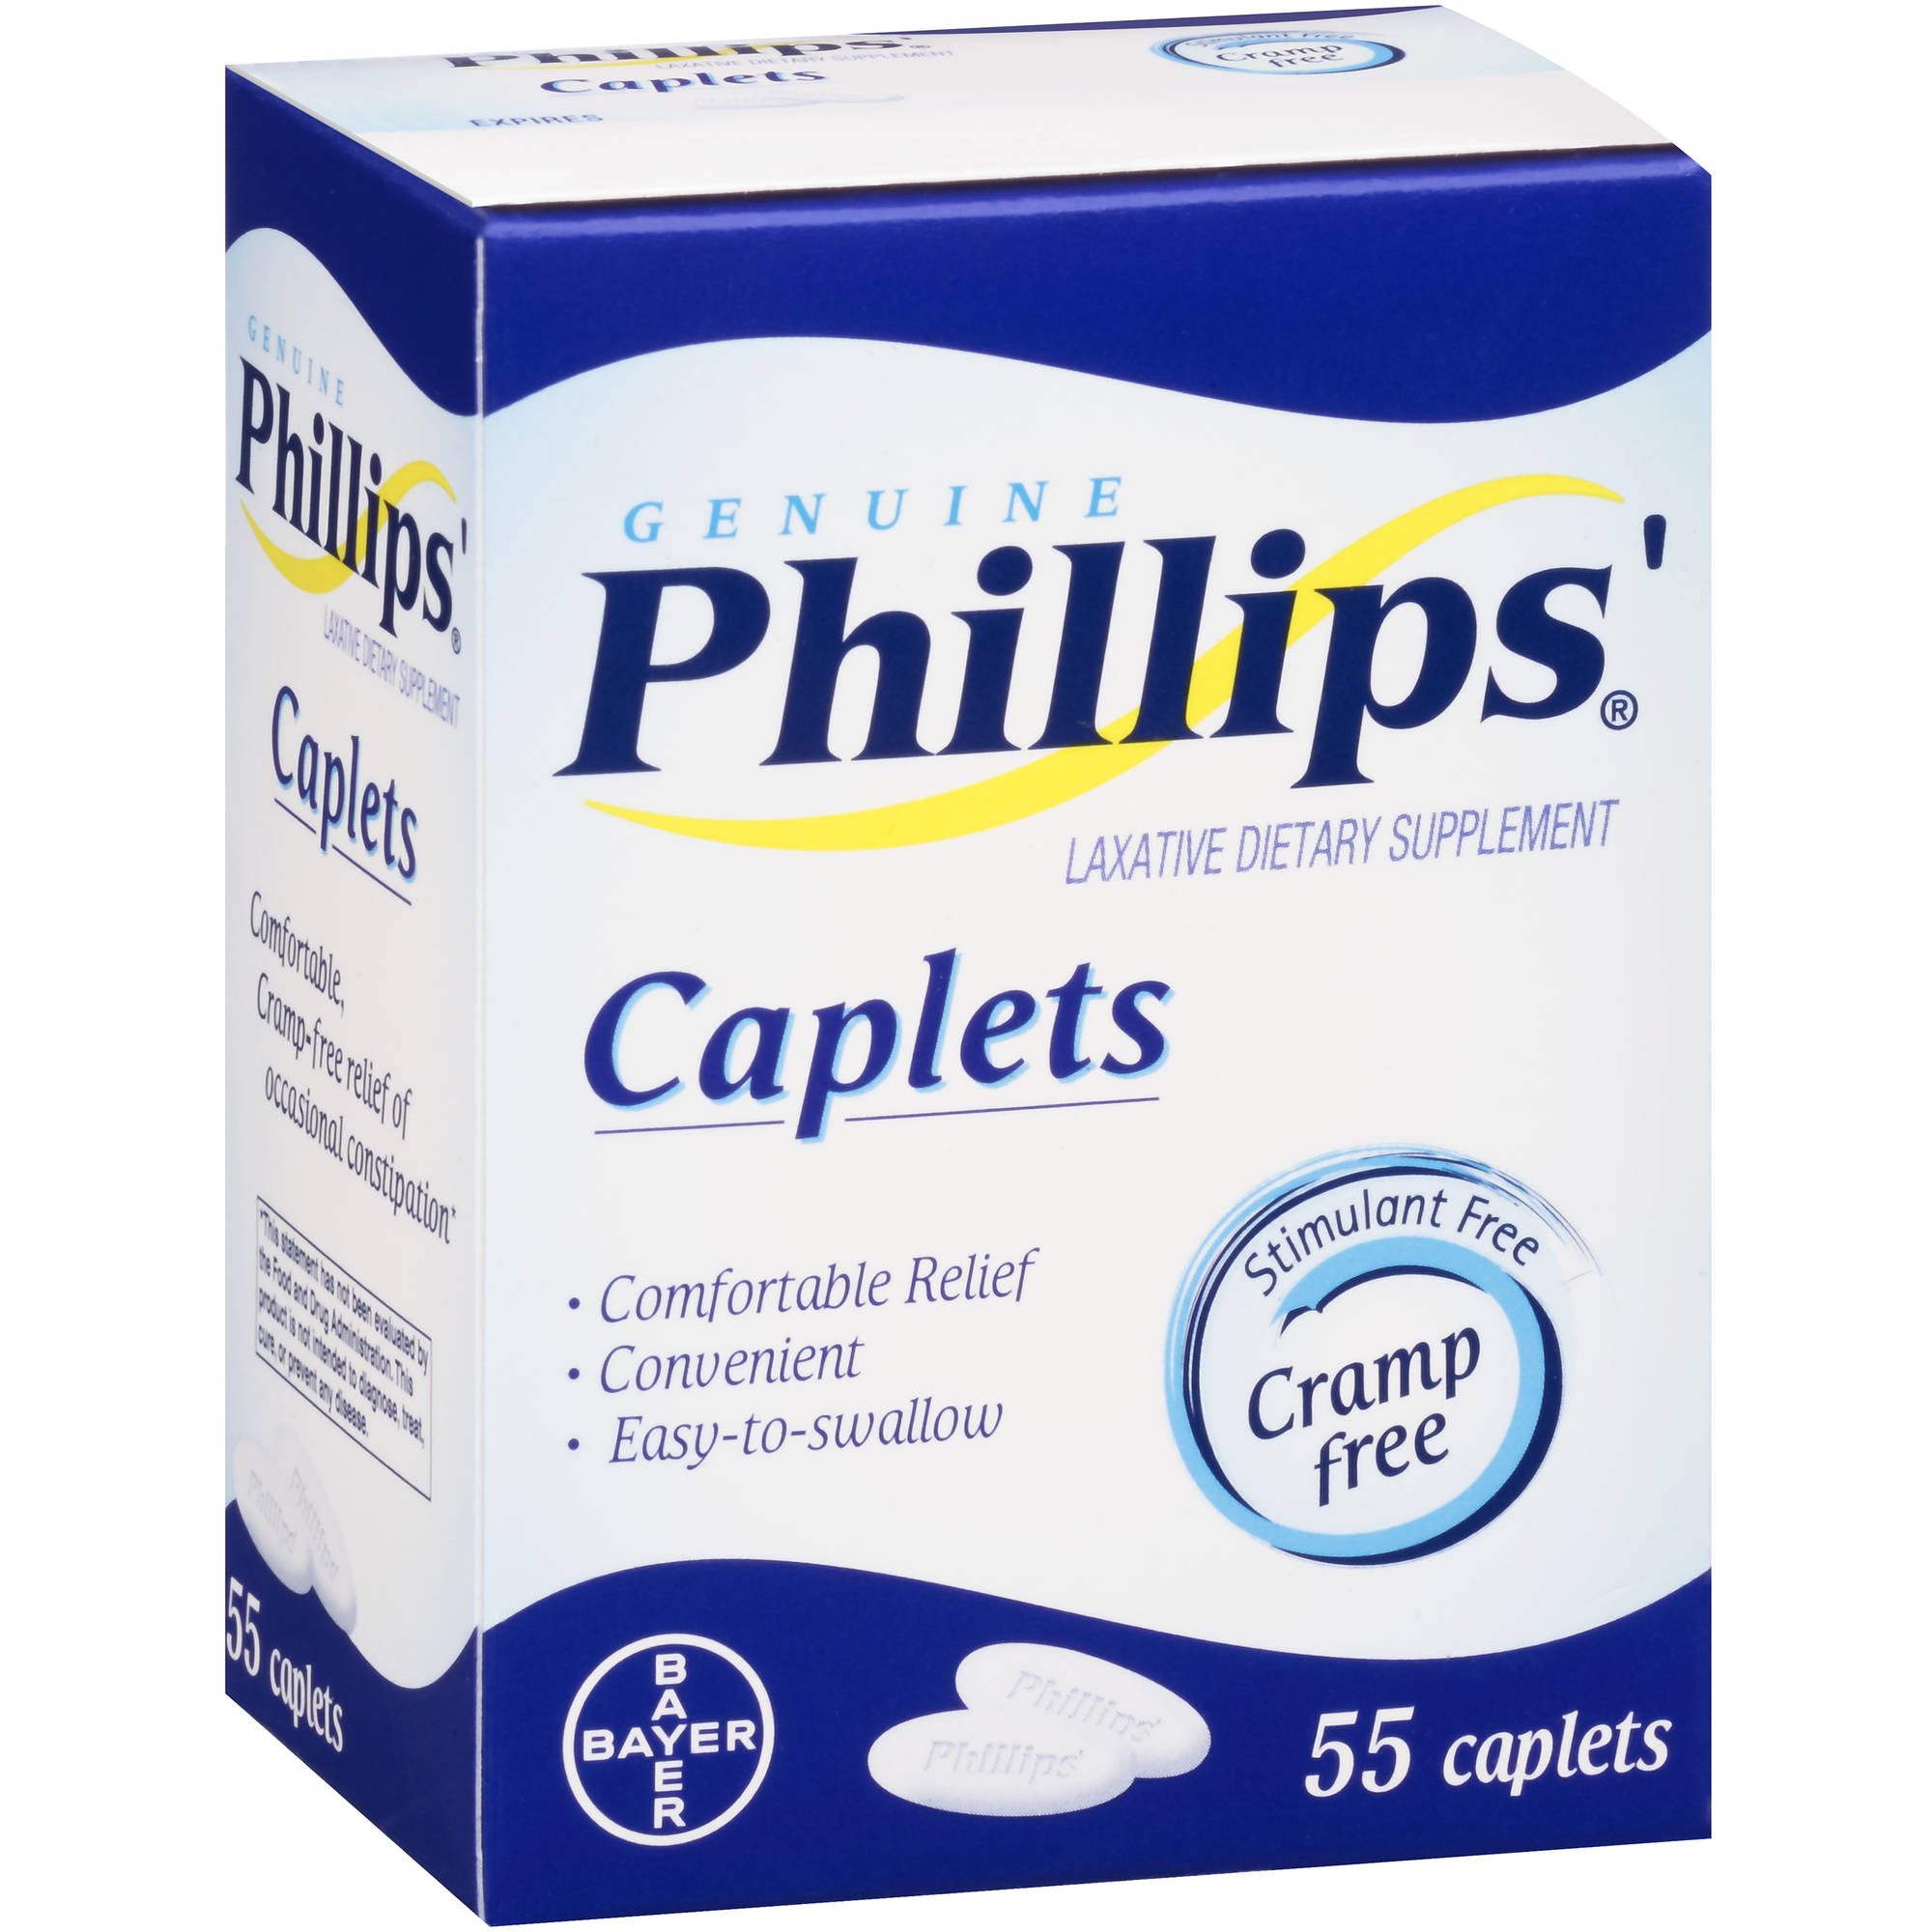 Genuine Phillips' Laxative Dietary Supplement, 55 count